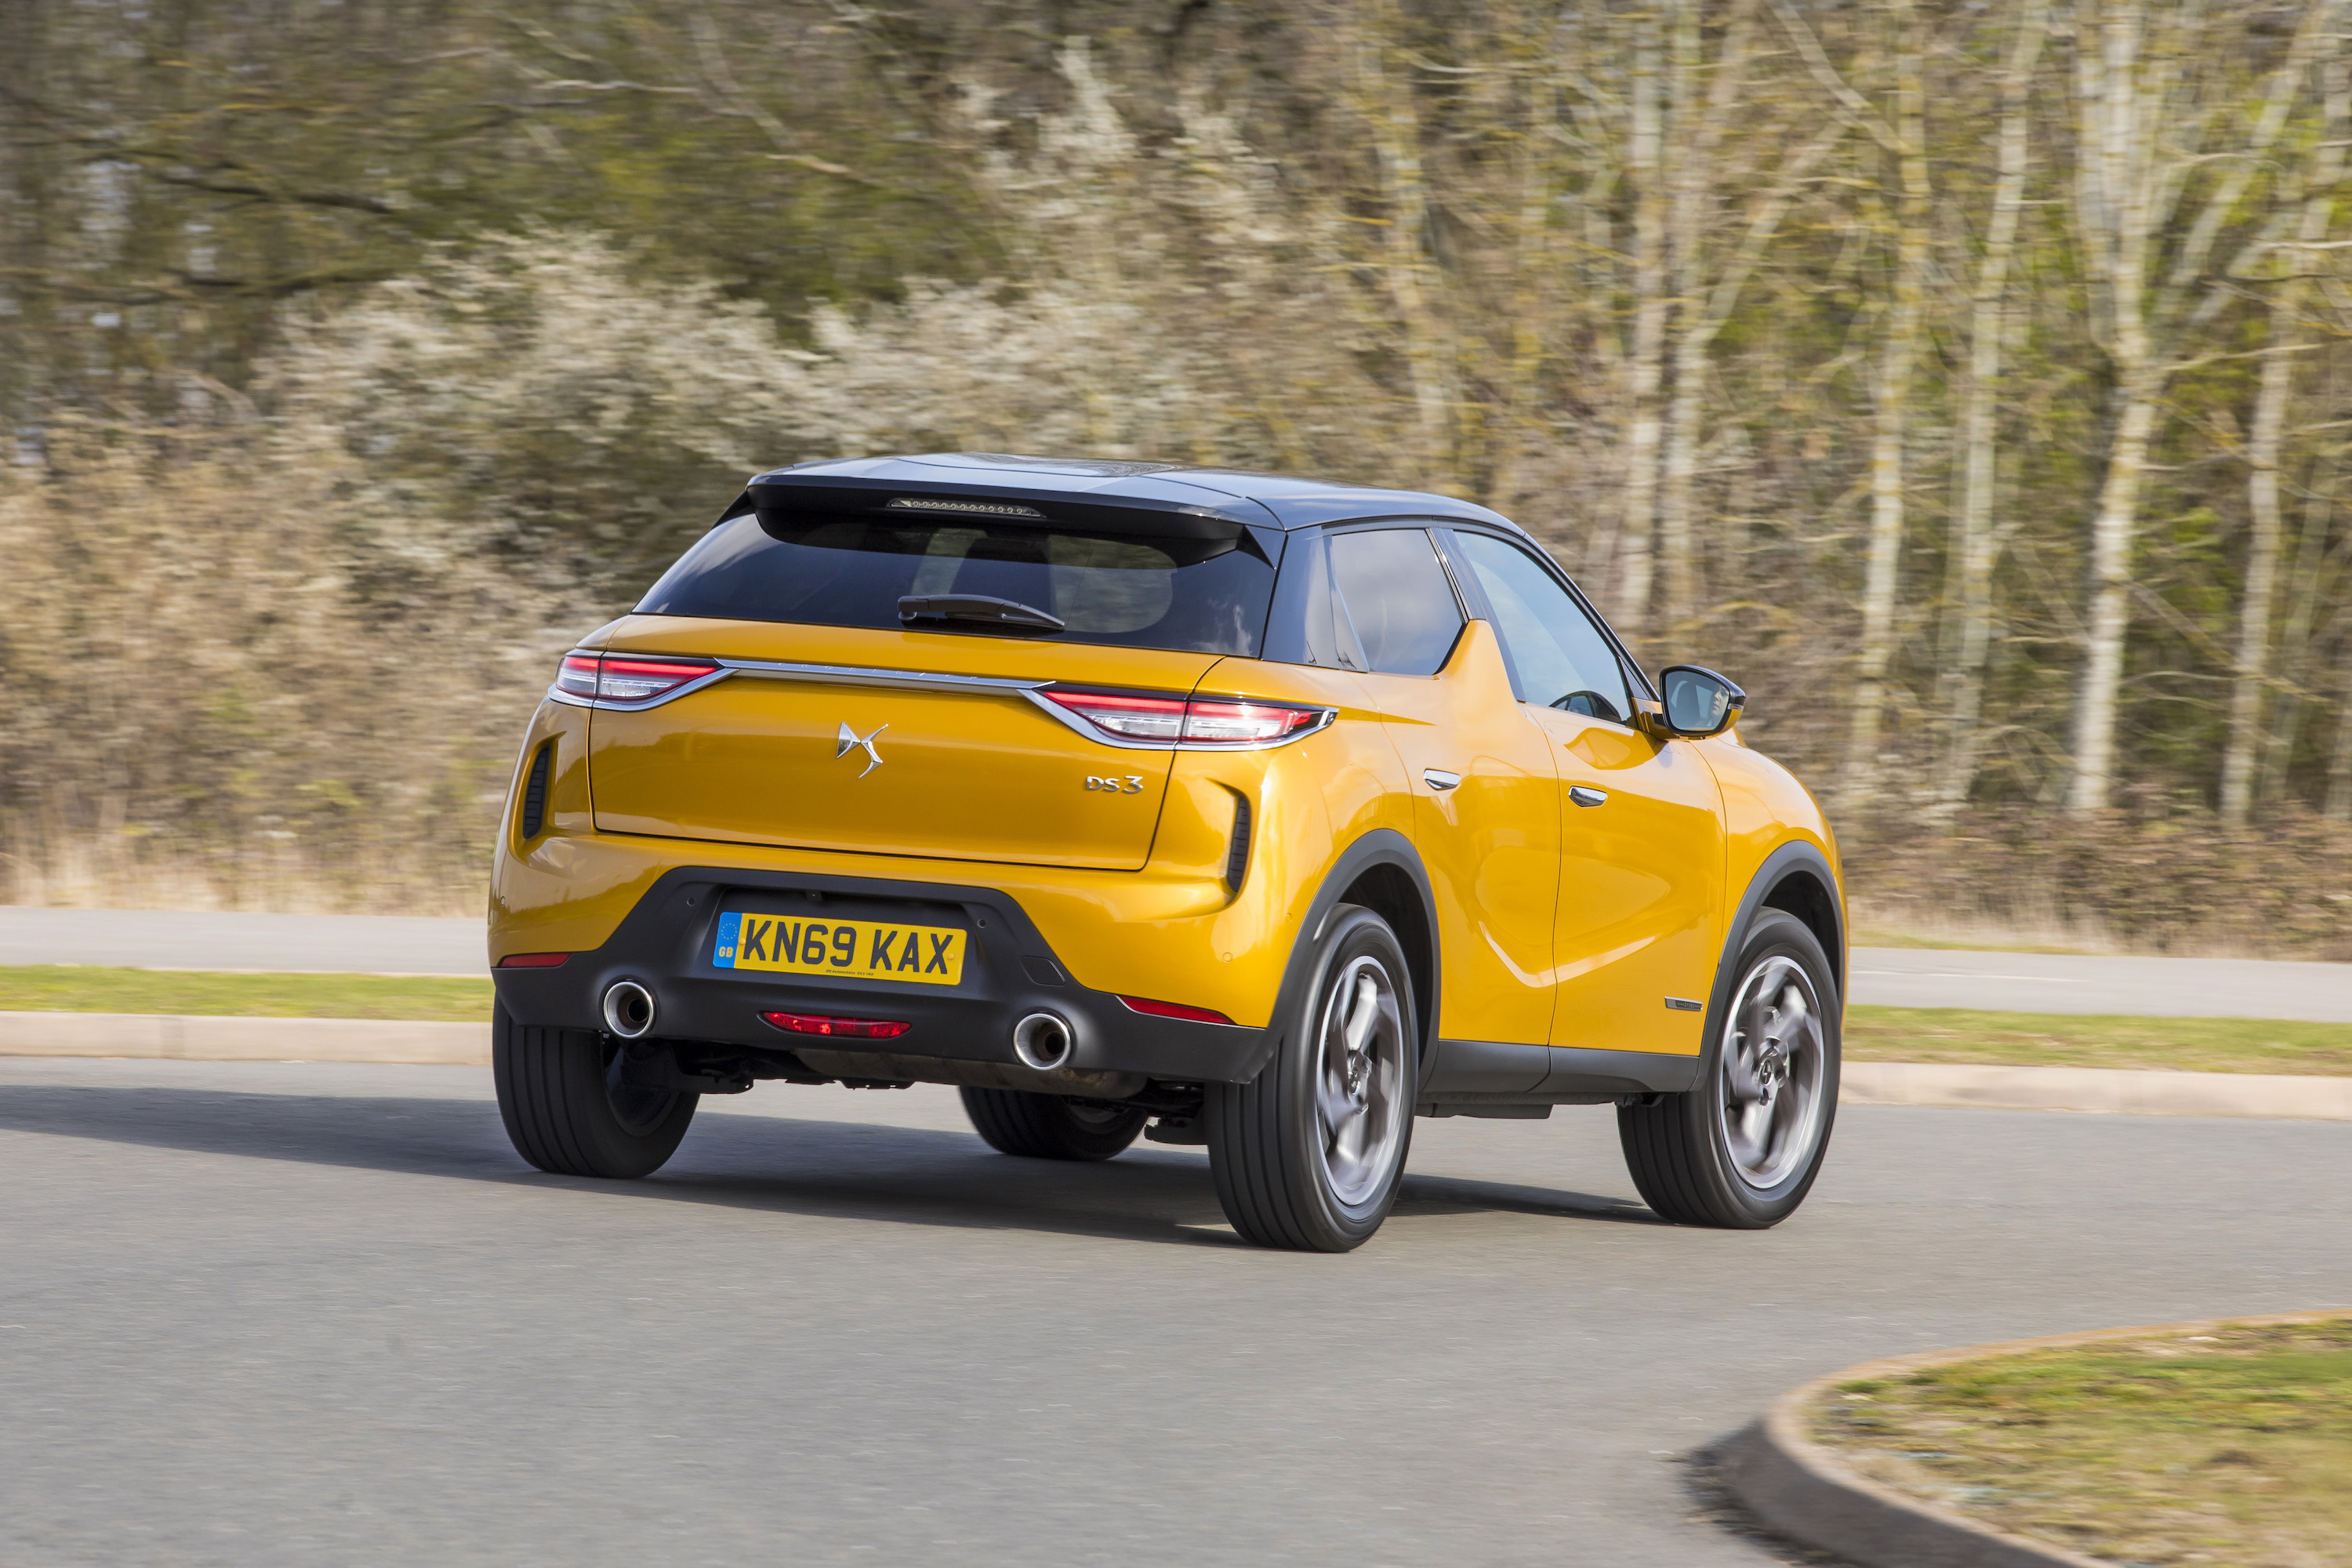 The car's rear design helps it to stand out from the crowd